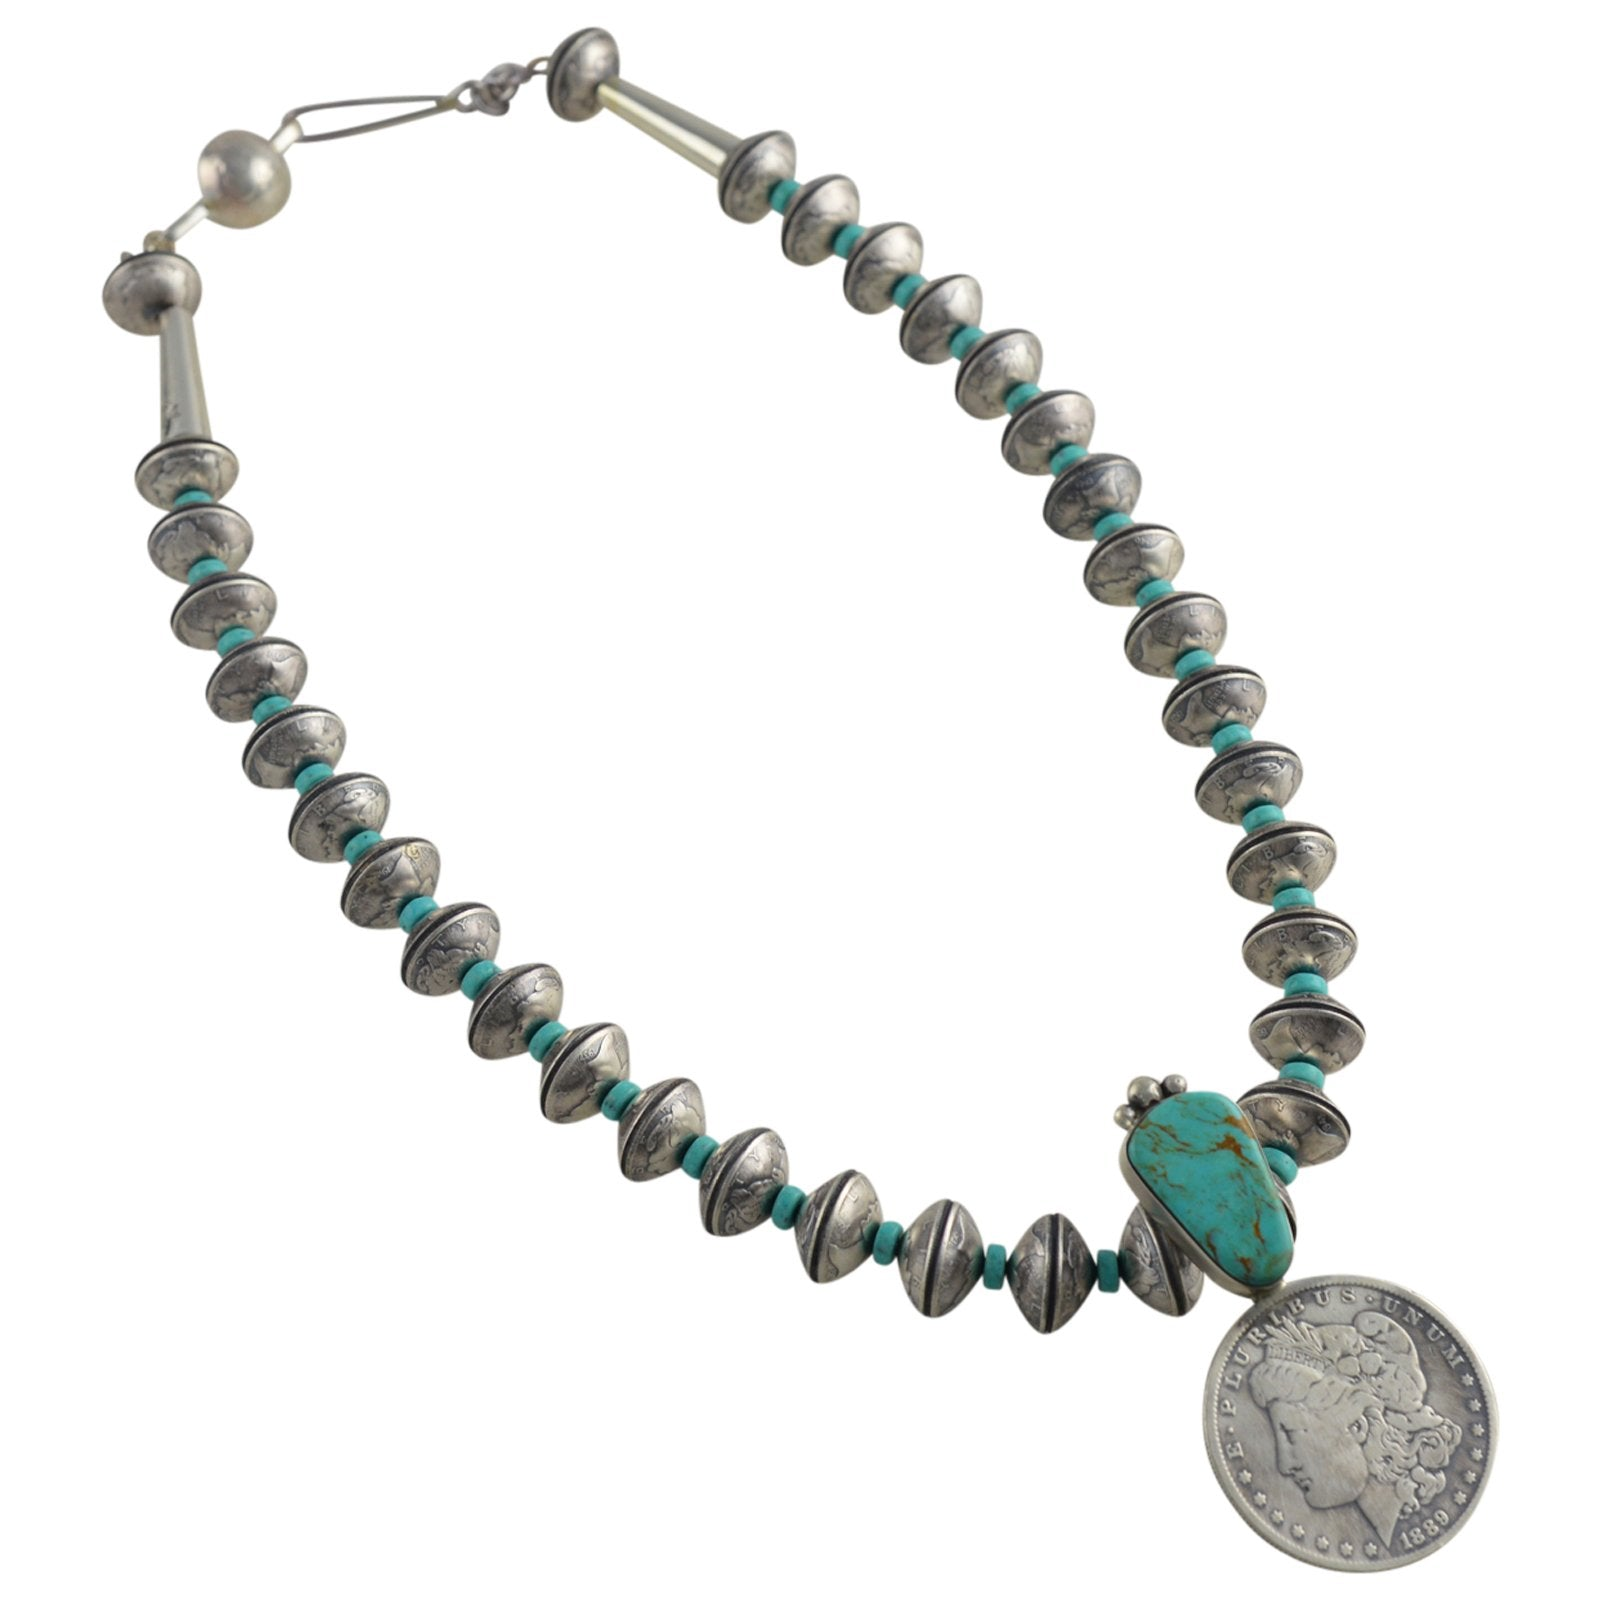 James McCabe Sterling Silver Kingman Turquoise & Mercury Dime Morgan Dollar Coin Necklace Navajo - Turquoise925